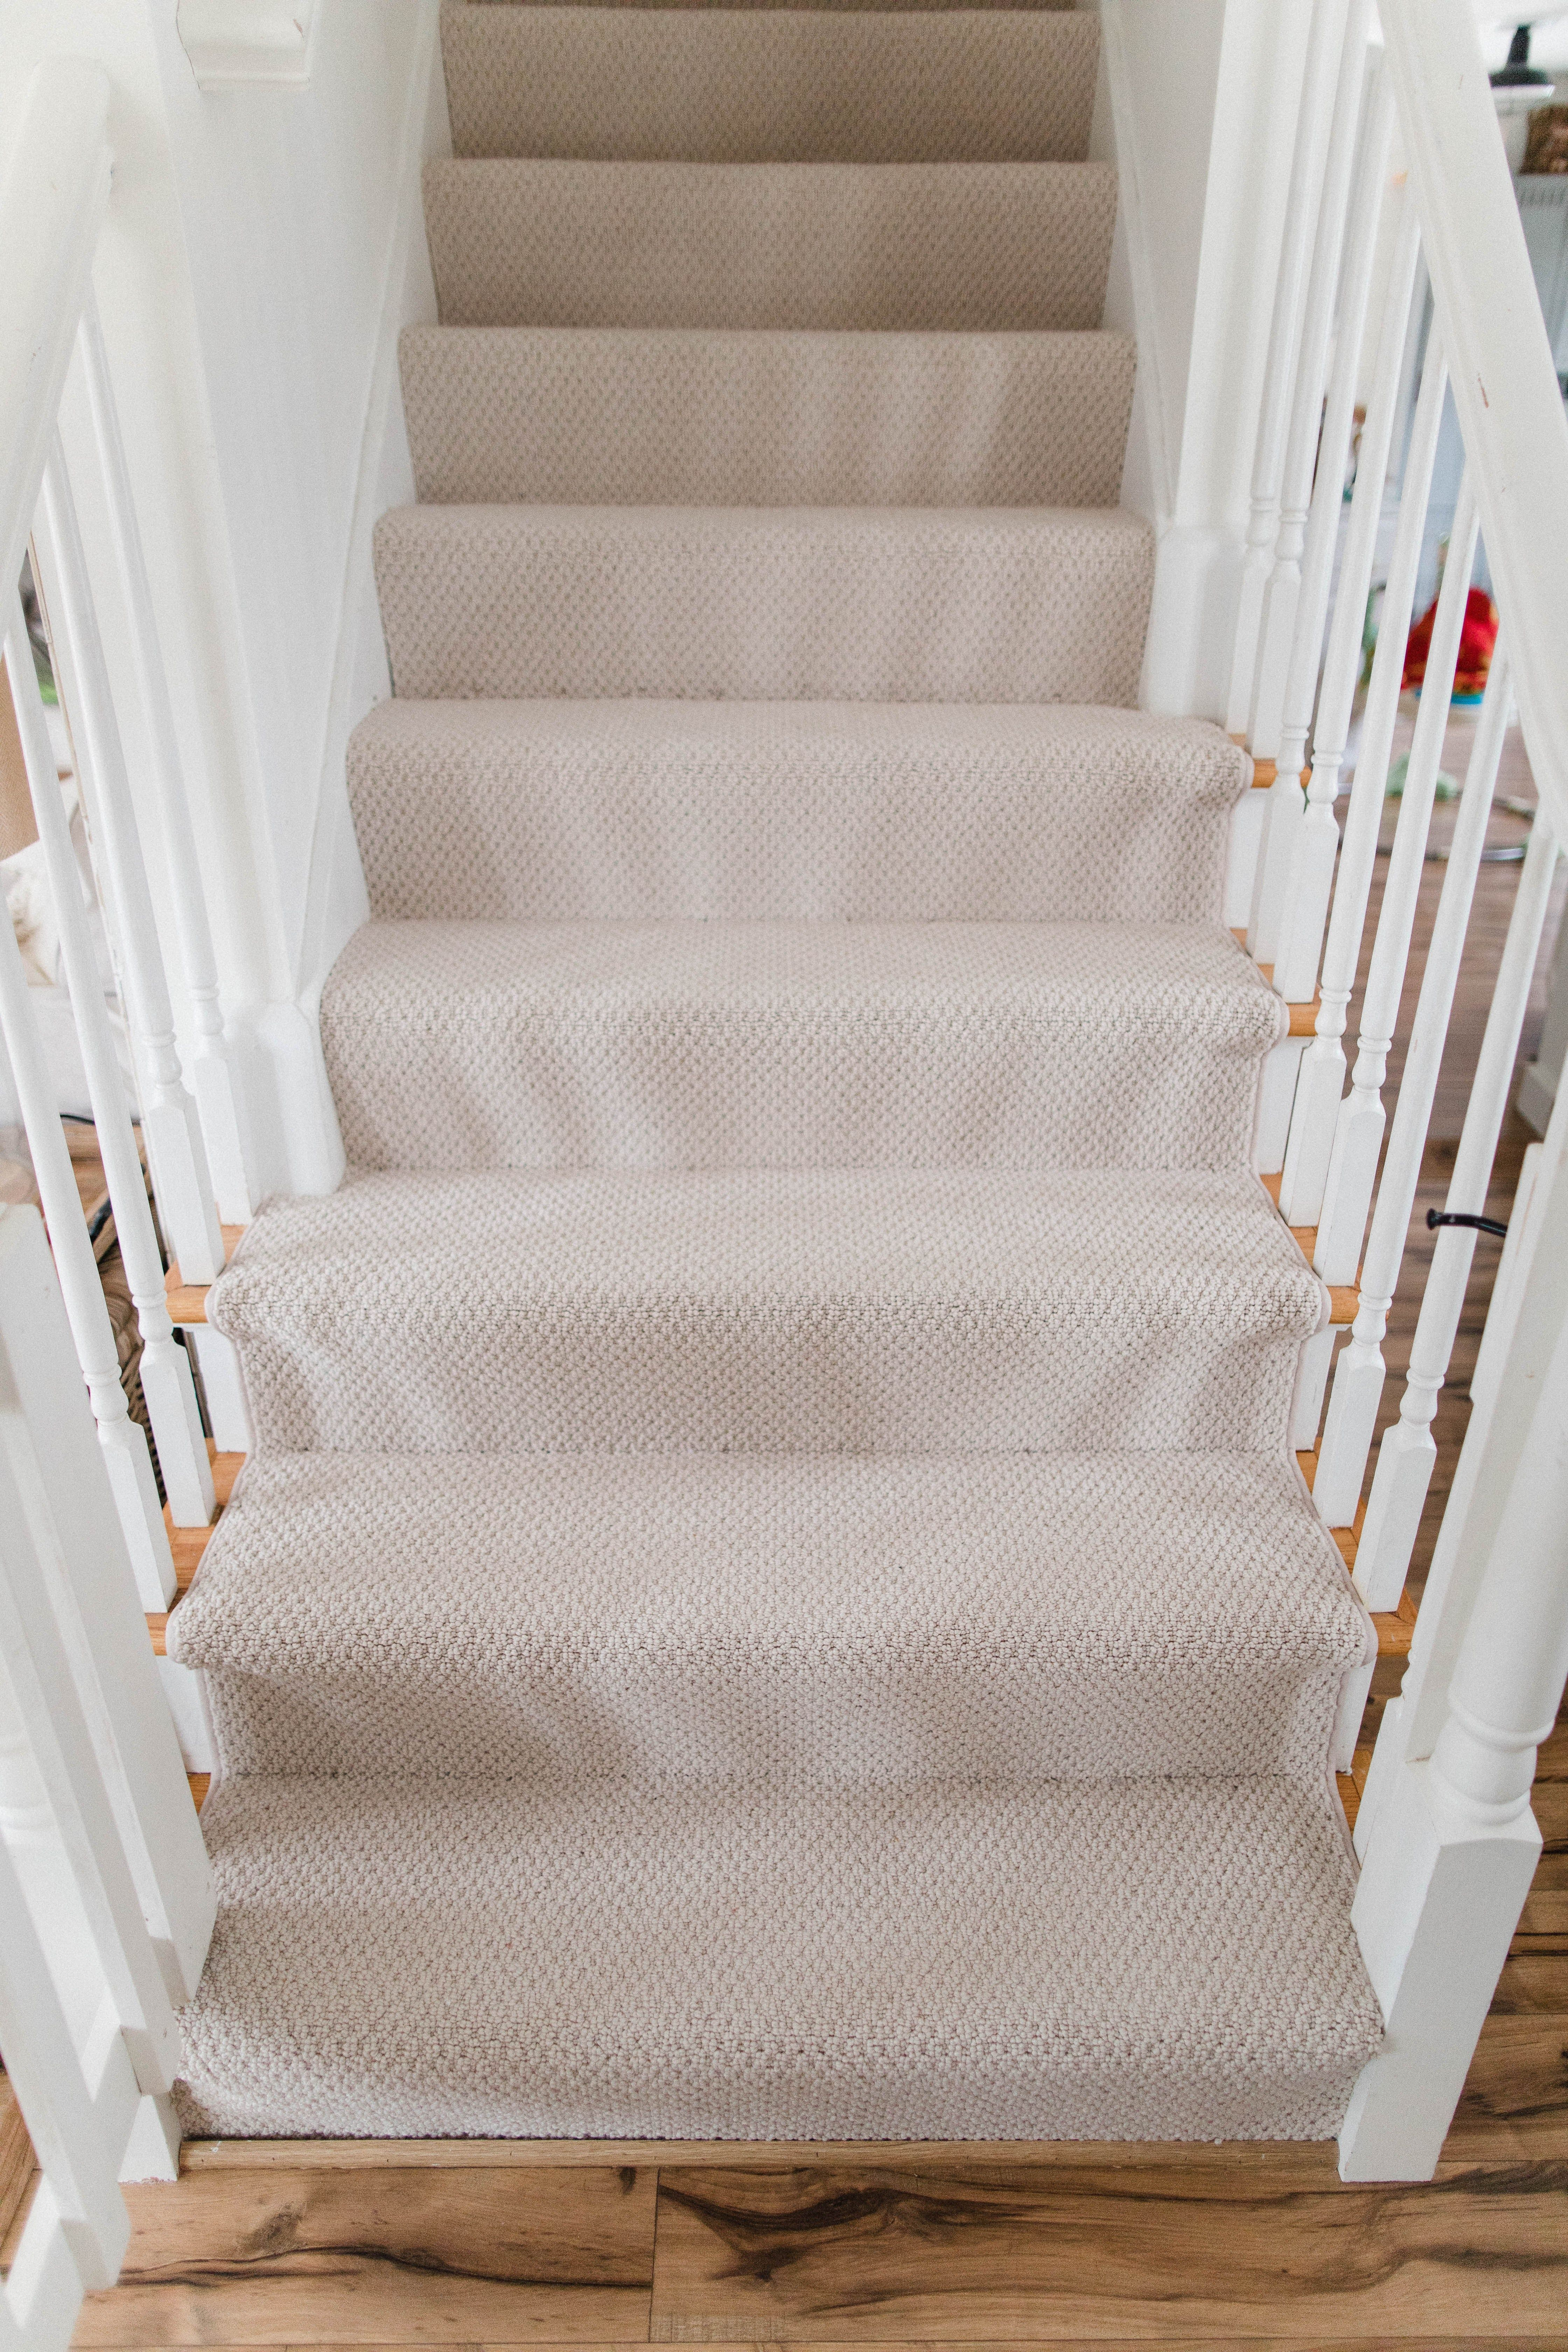 Why We Installed Wall To Wall Carpeting Upstairs Lauren Mcbride Bedroom Carpet Colors Carpet Stairs Wall Carpet